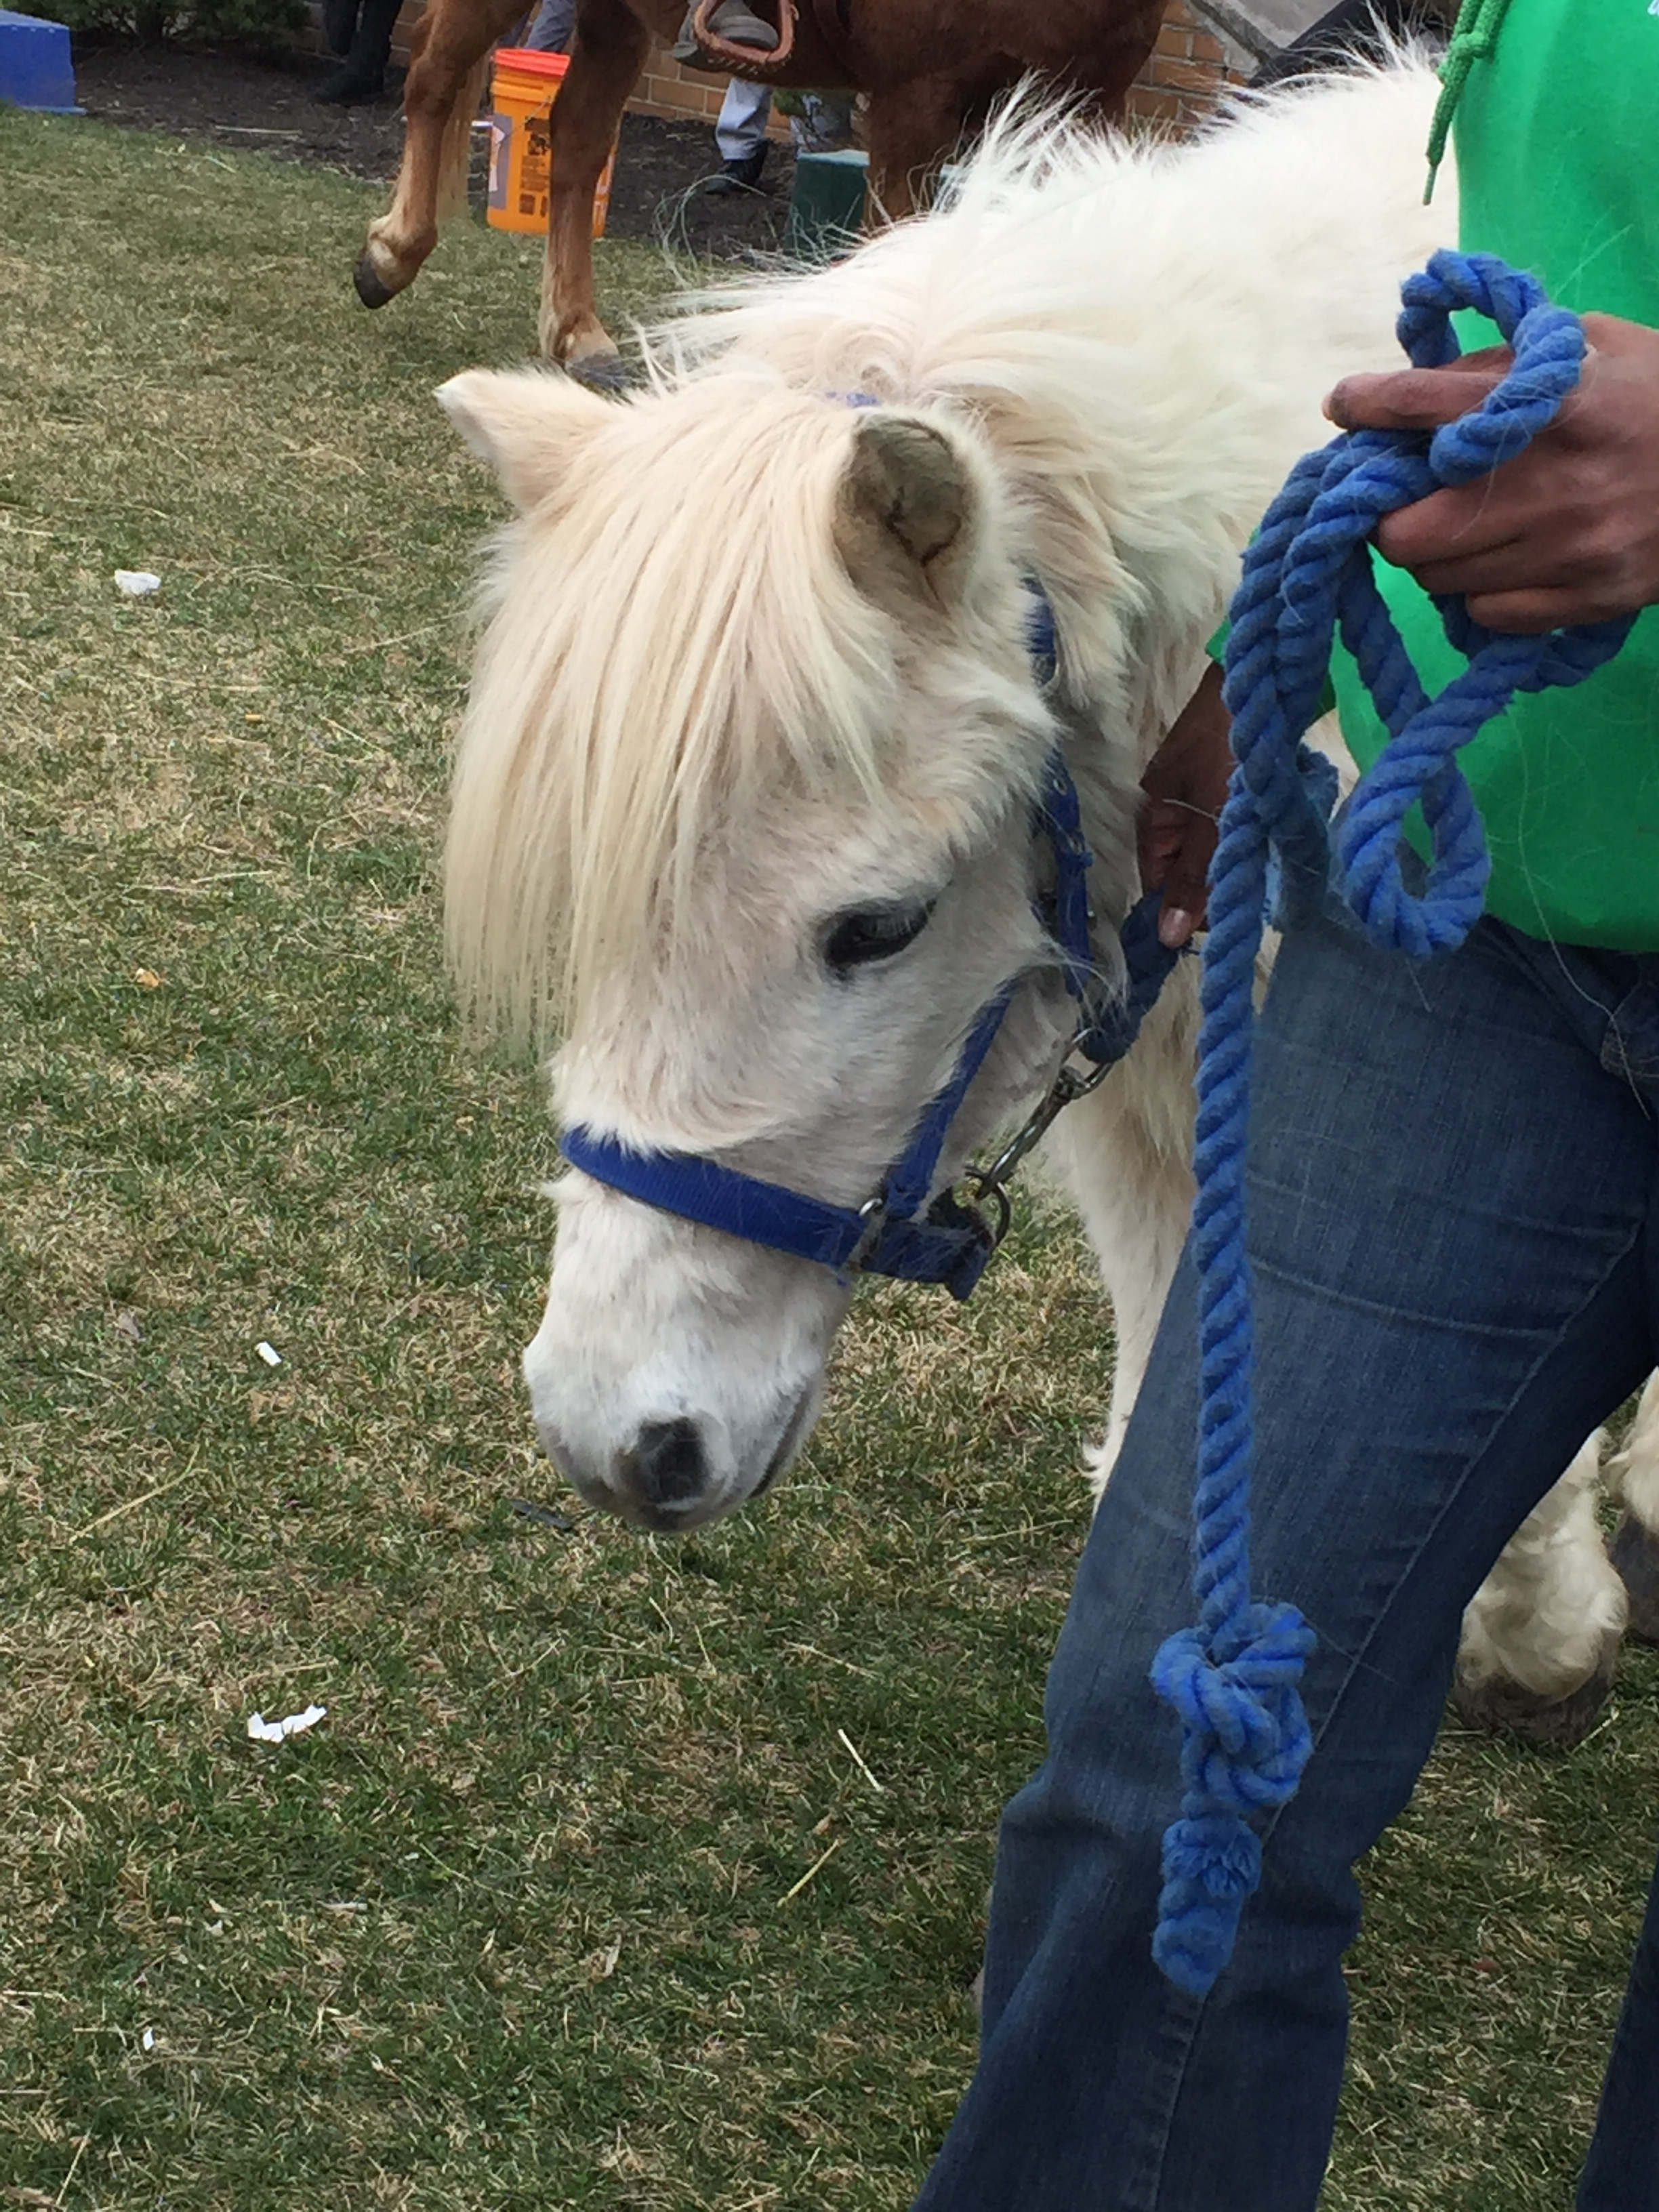 St. Patrick's Day festival photo op with Whitetale the pony